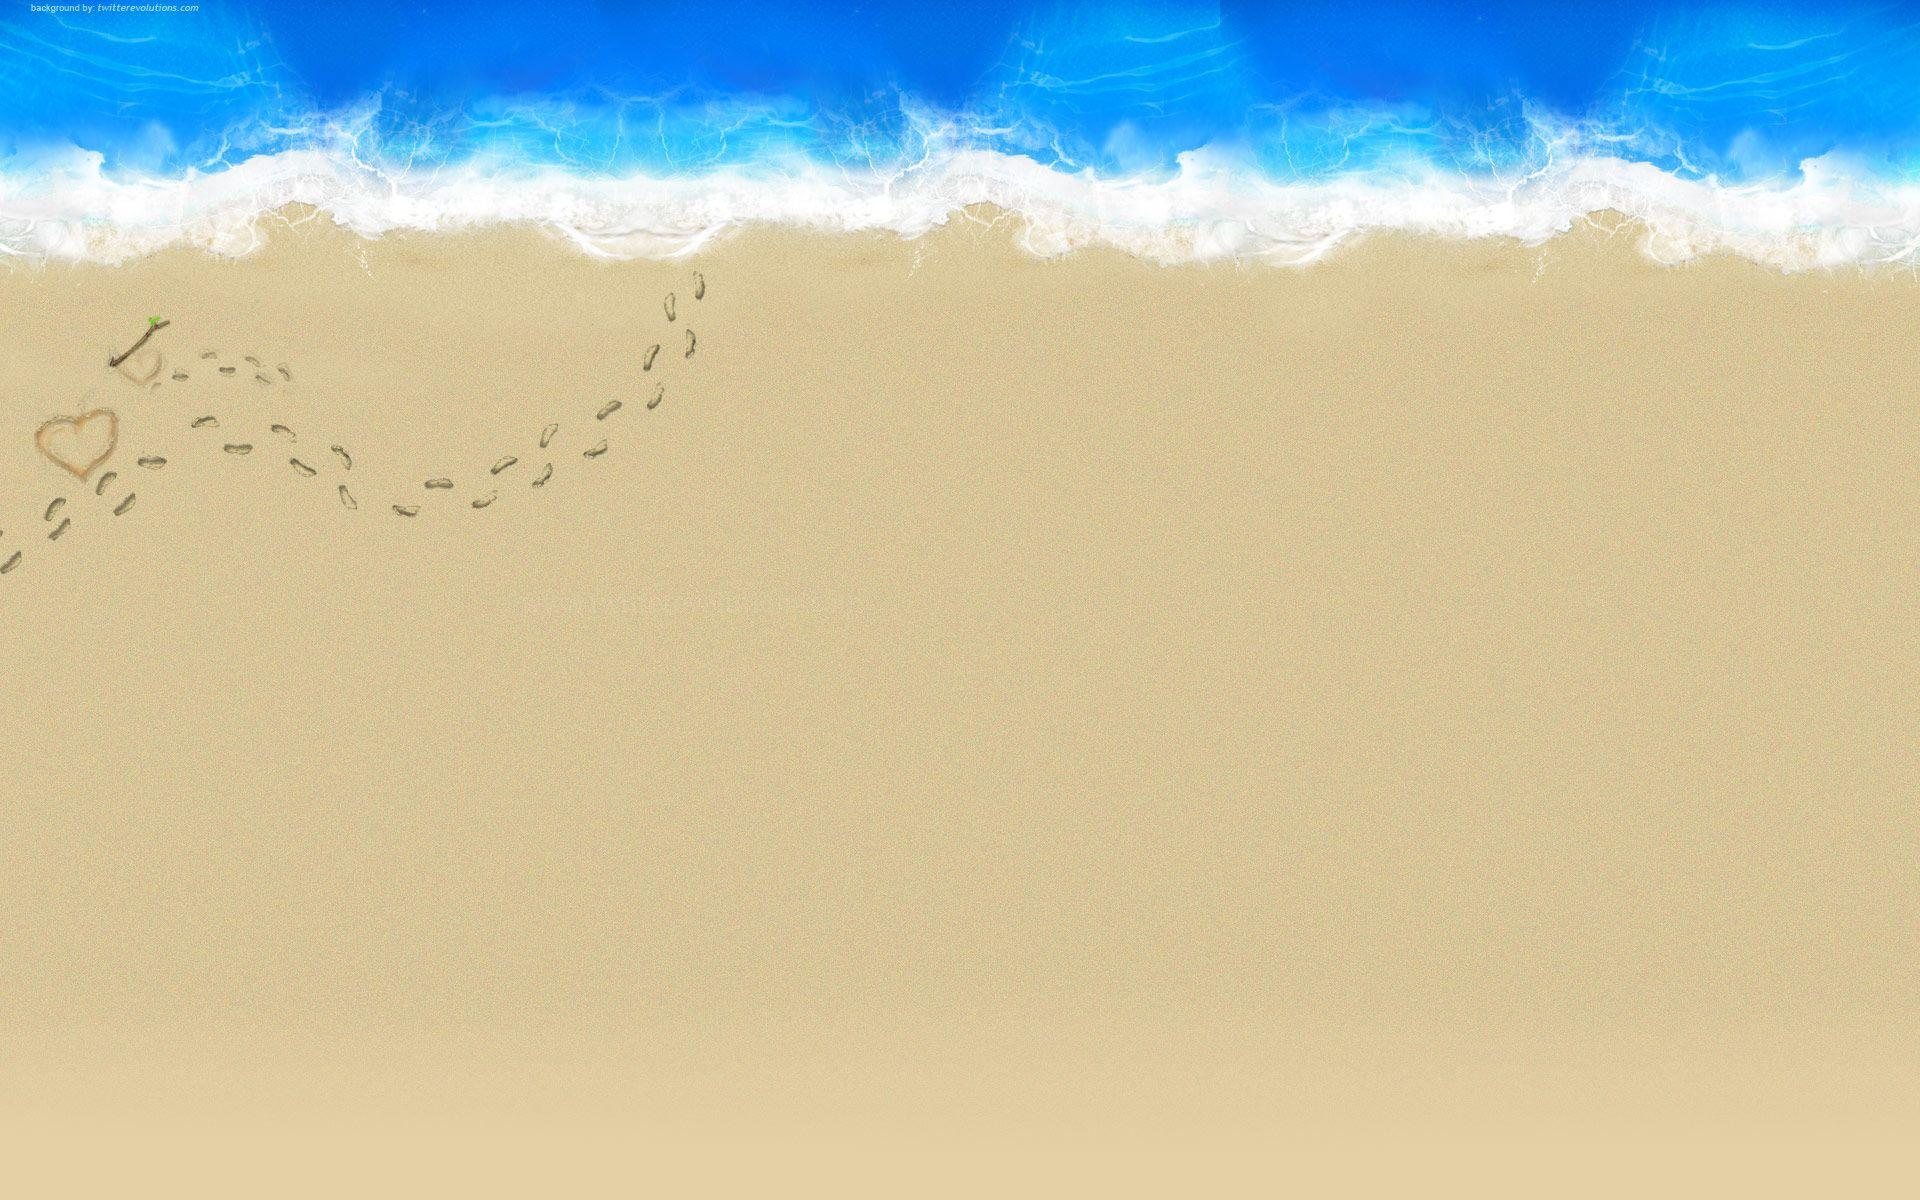 moving beach backgrounds for wallpaper - photo #37